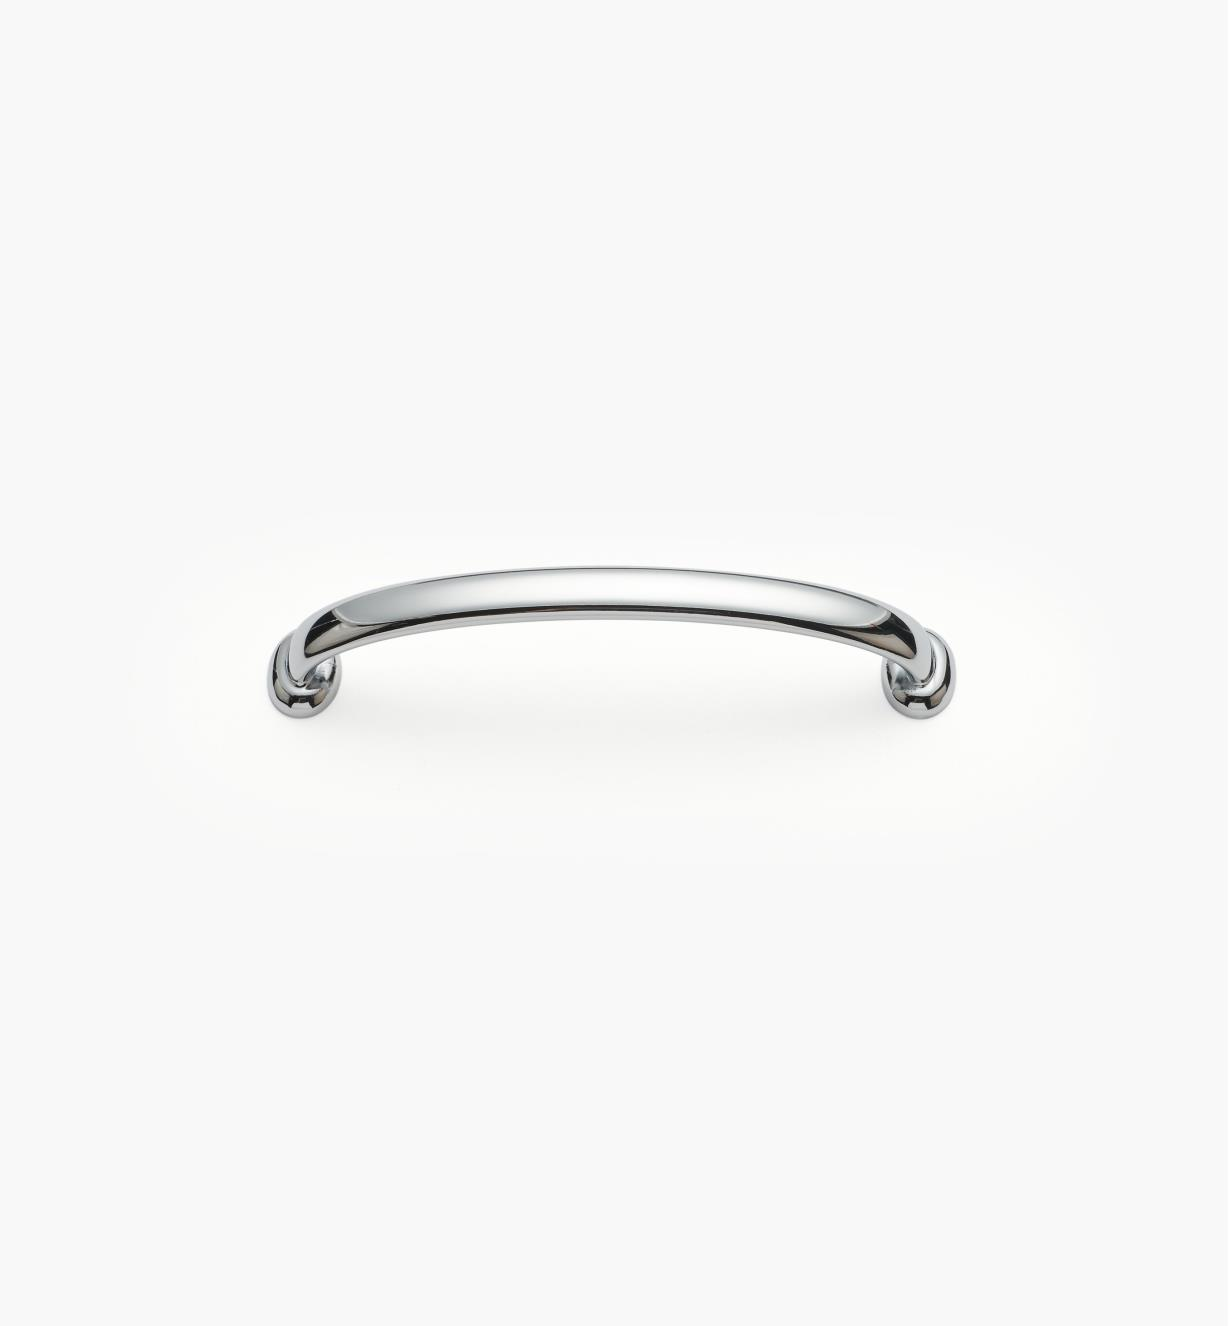 02W3402 - 128mm Chrome Plate Handle